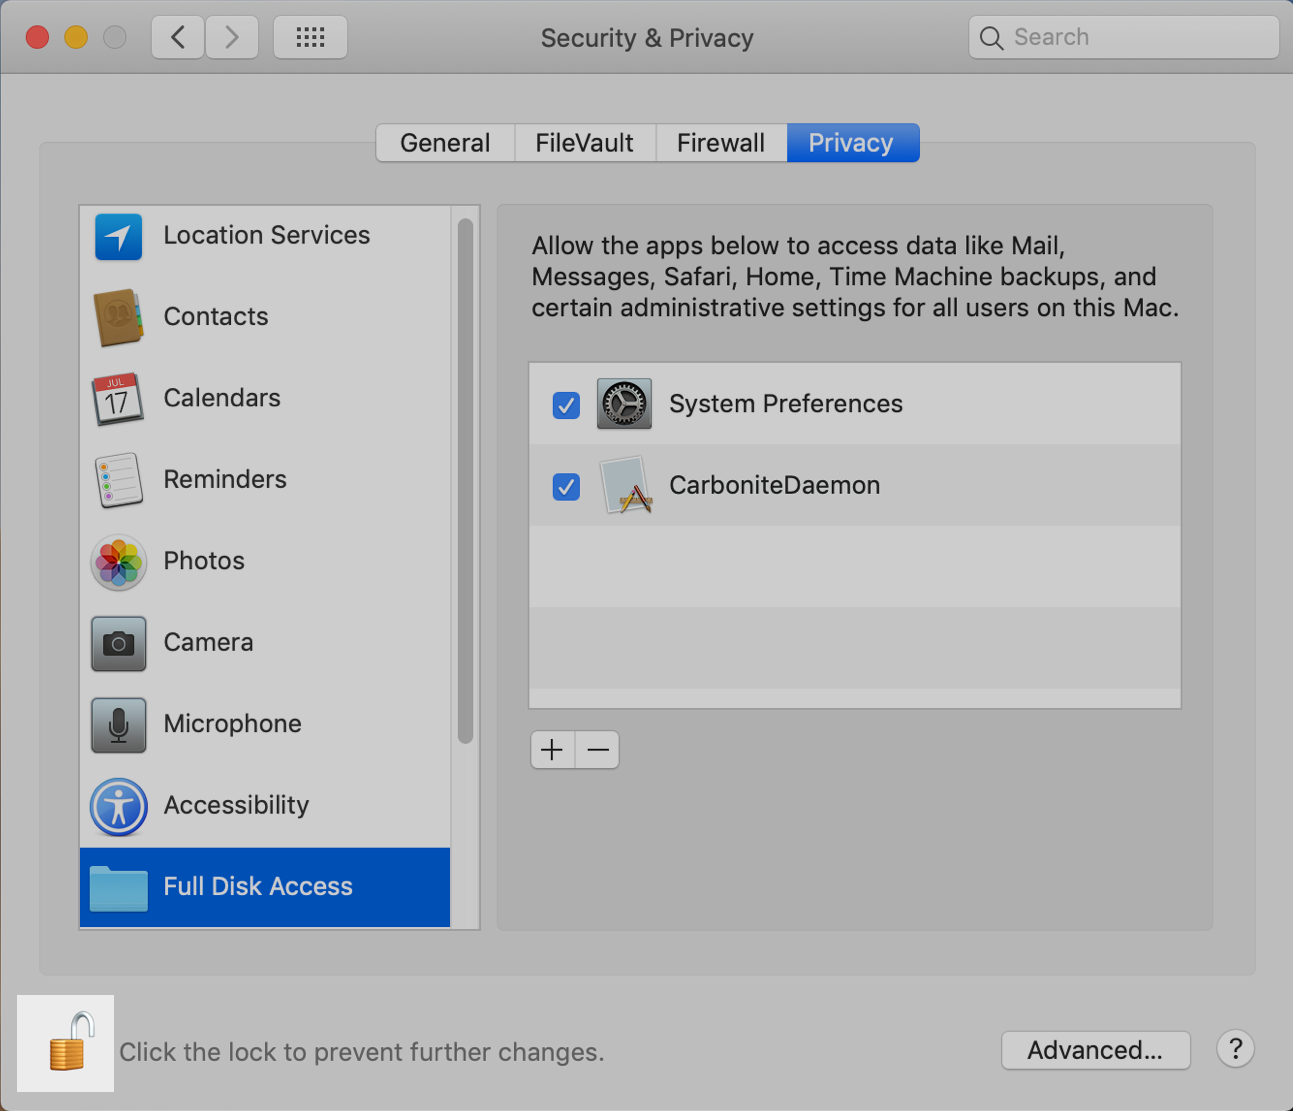 macOS System Preferences: Click Padlock to prevent changes